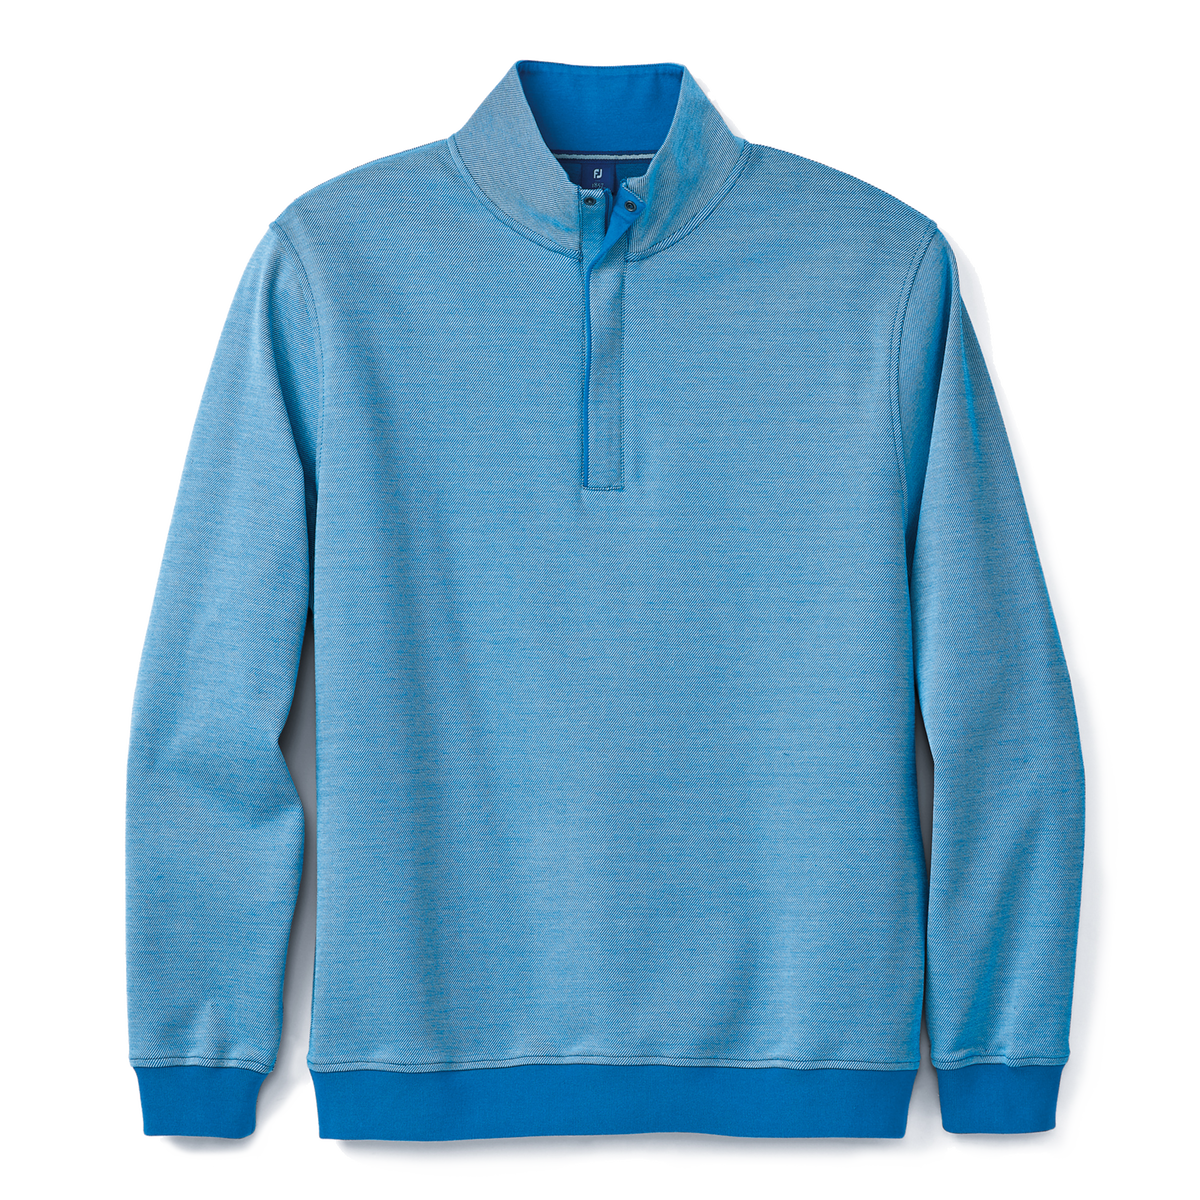 Twill Jacquard Quarter-Zip-Previous Season Style